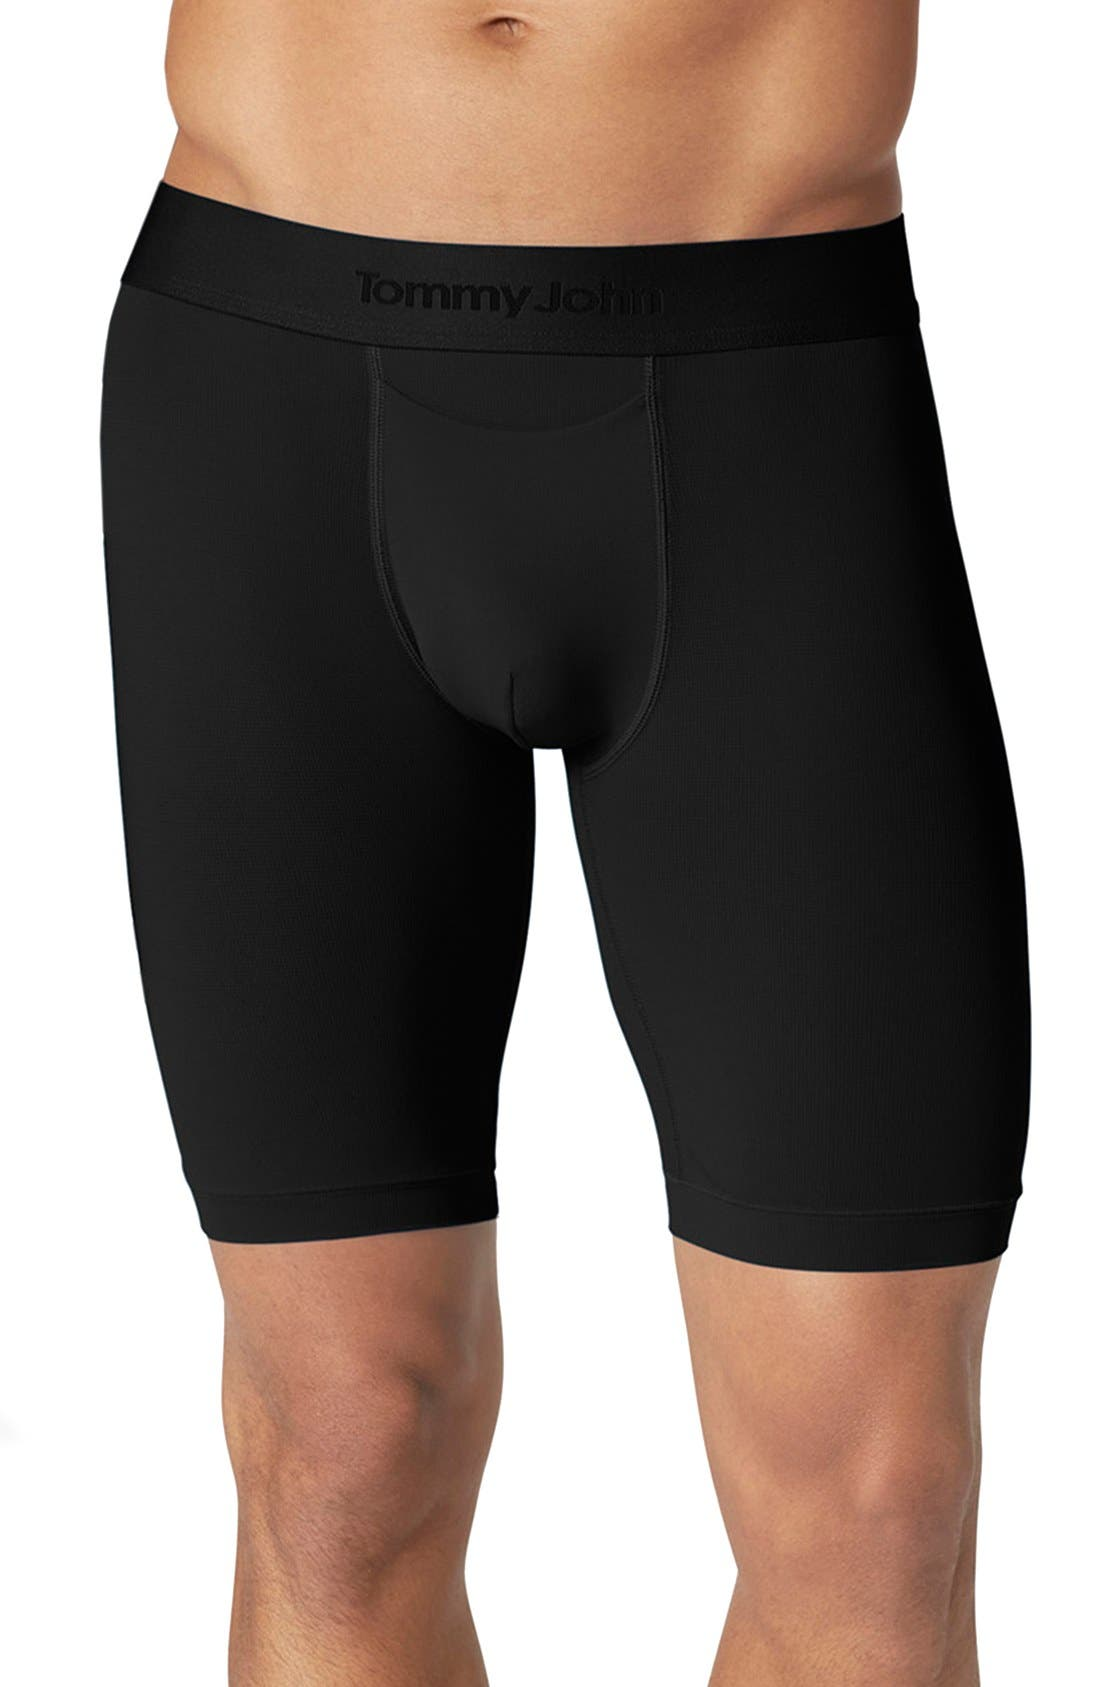 Air Boxer Briefs,                             Main thumbnail 1, color,                             BLACK